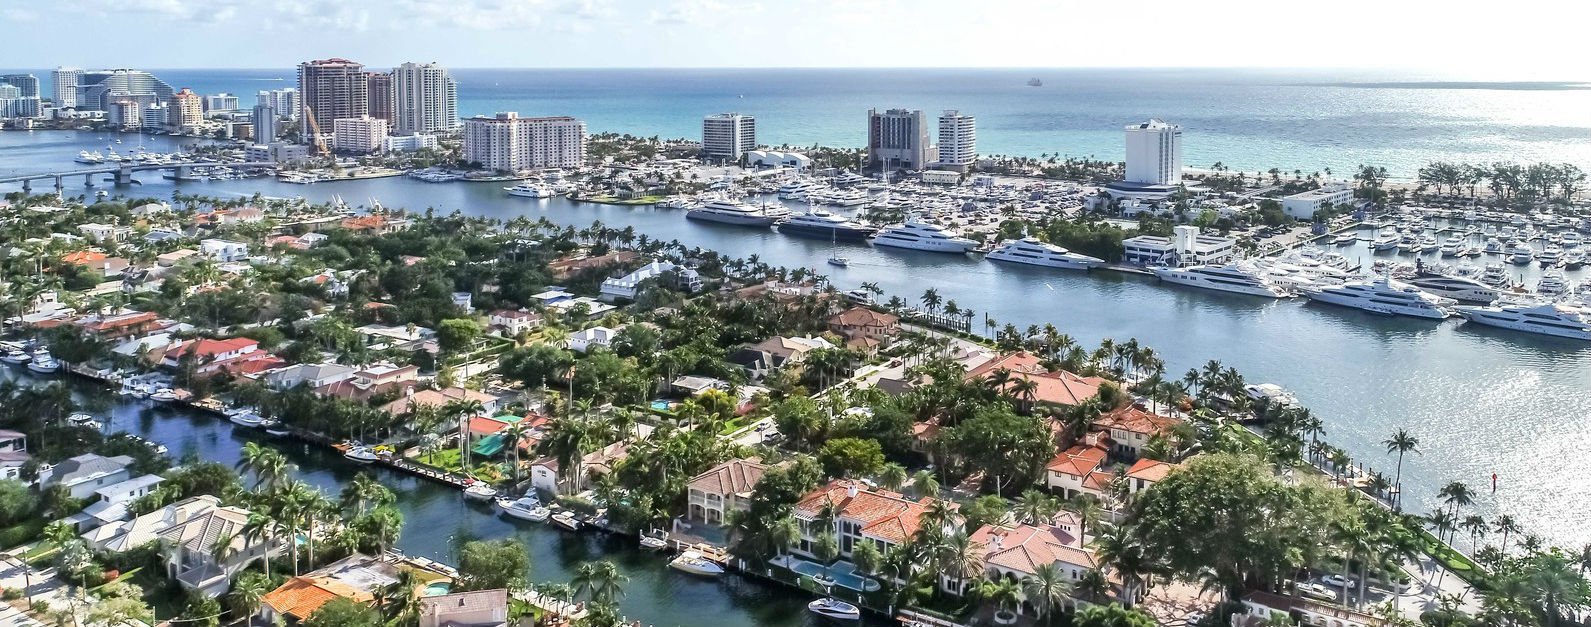 Selling a fort lauderdale home